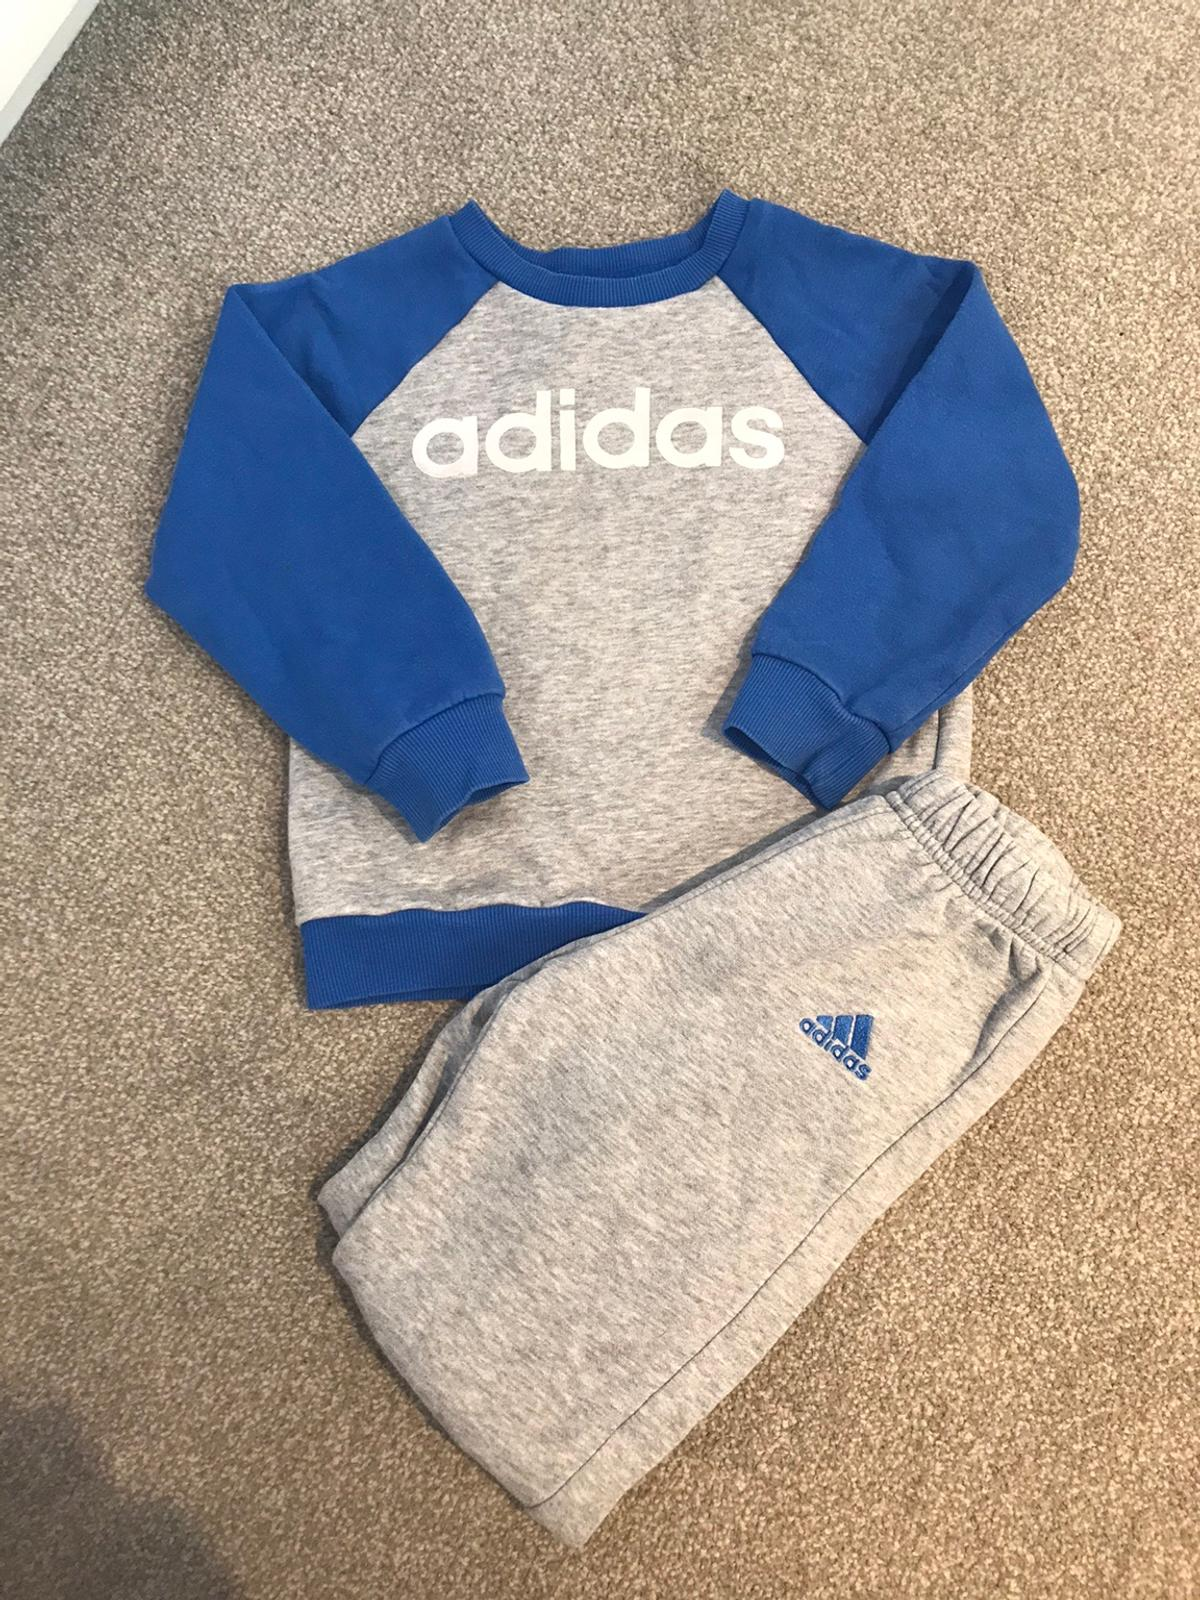 Kids blue and grey Adidas tracksuit Size 18-24months